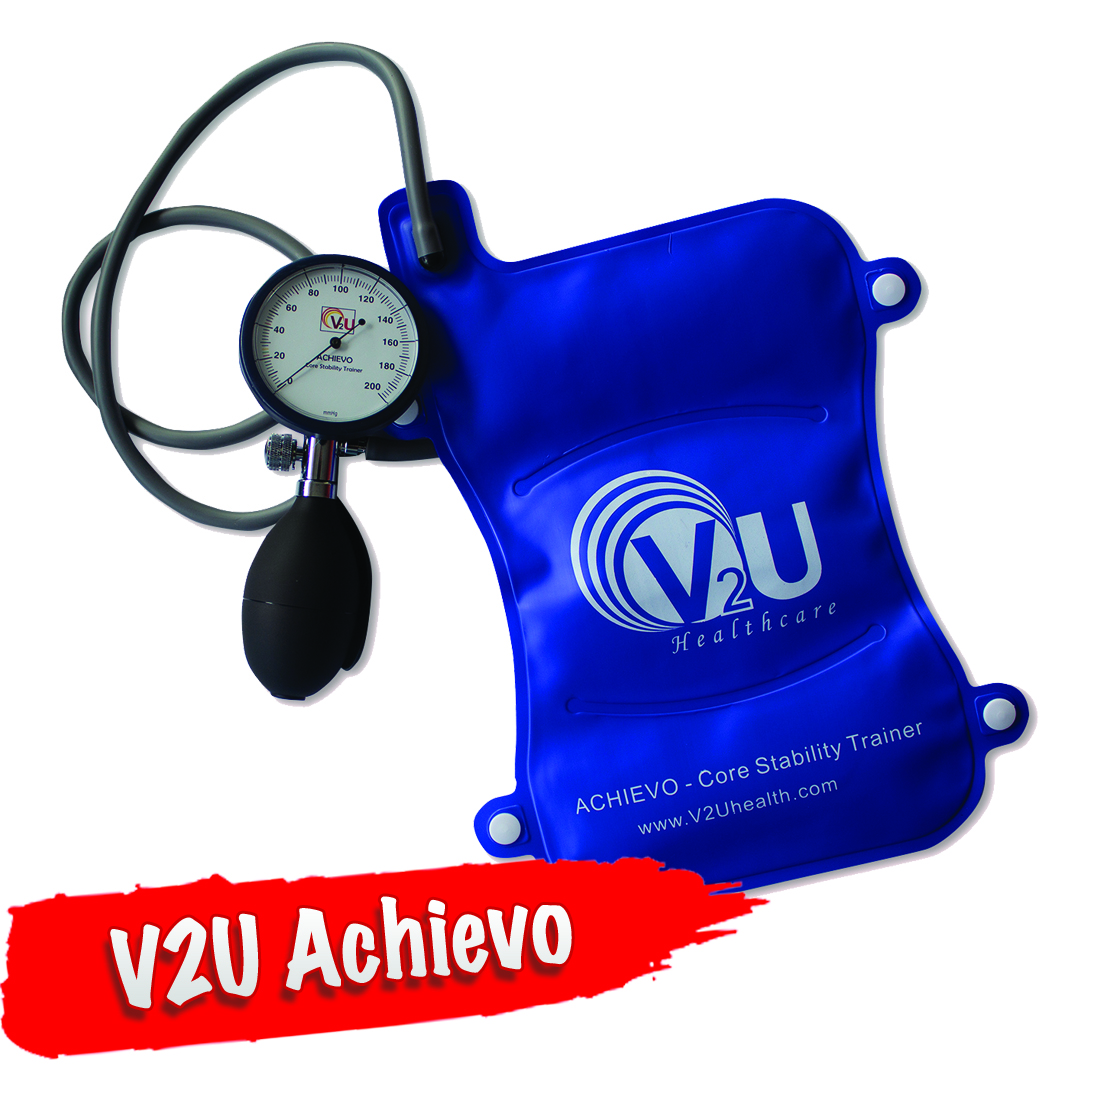 V2U Archievo - Home Care Bed